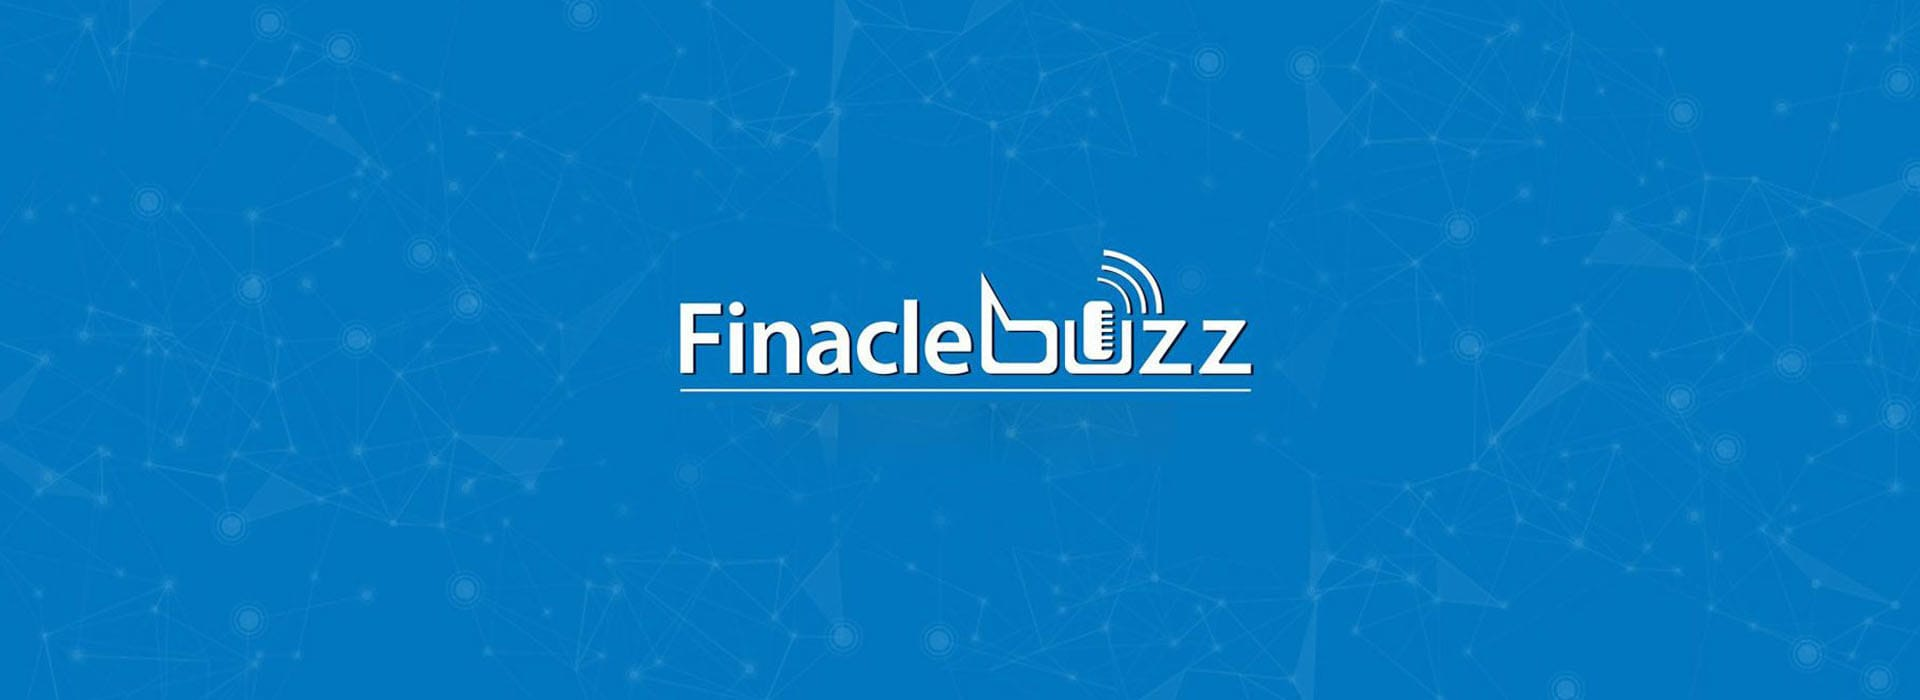 finacle-buzz-bg